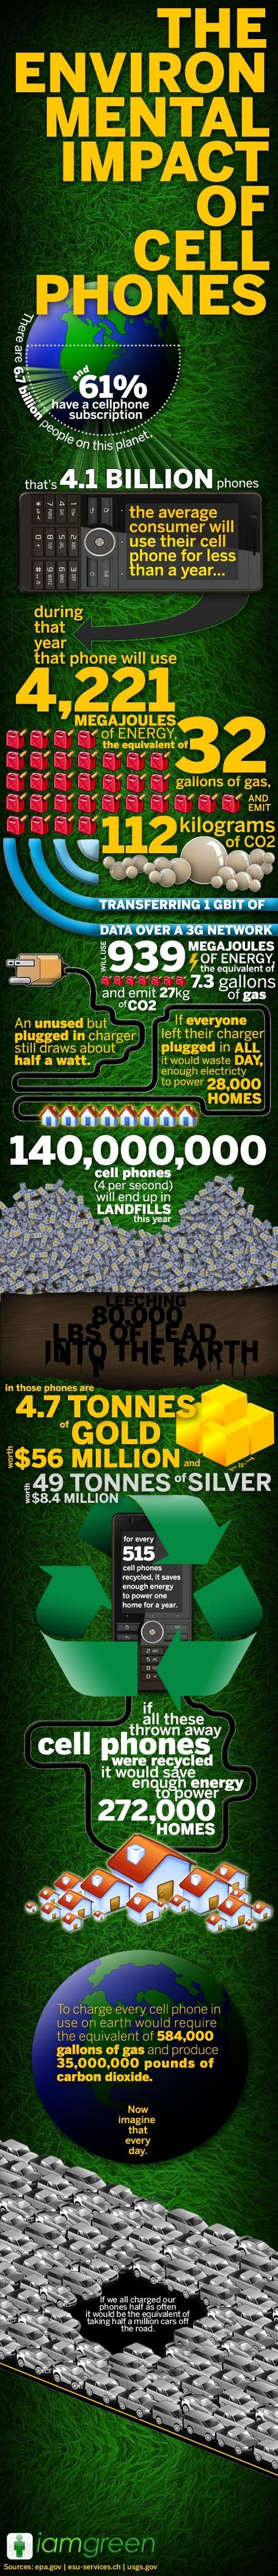 The Environmental Impact Of Cell Phones | Visual.ly | TIC et Tech news | Scoop.it